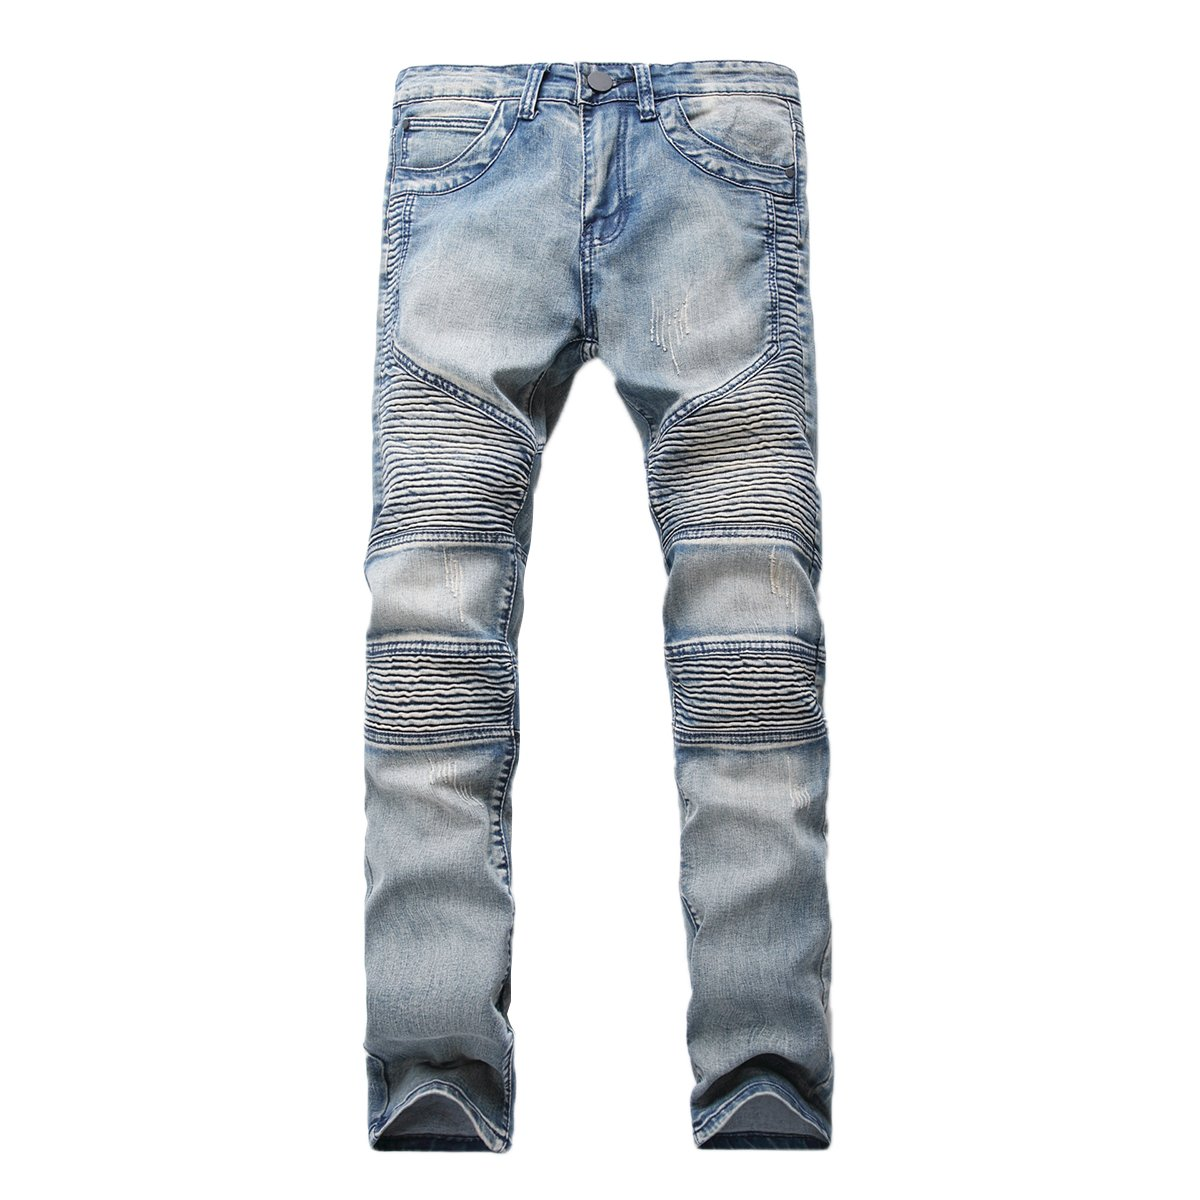 a45820e72a2 Biker jeans, Ripped jeans, Destroyed jeans, Distressed jeans, Straight fit.  Vintage and casual style with ripped holes at knees